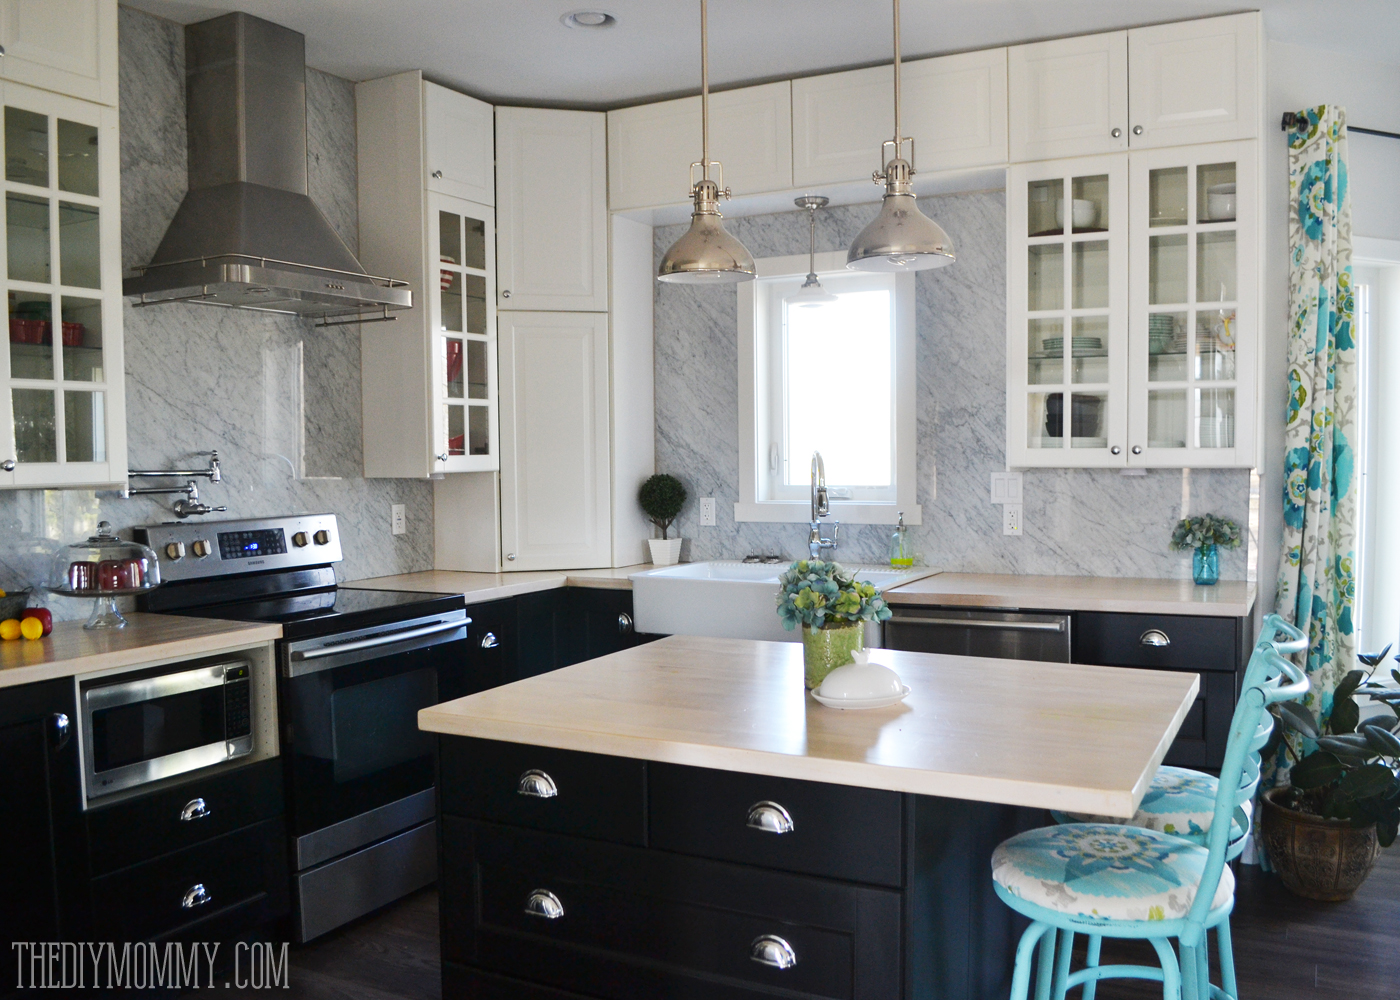 A Marble Panel Backsplash For Our Diy Kitchen The Diy Mommy